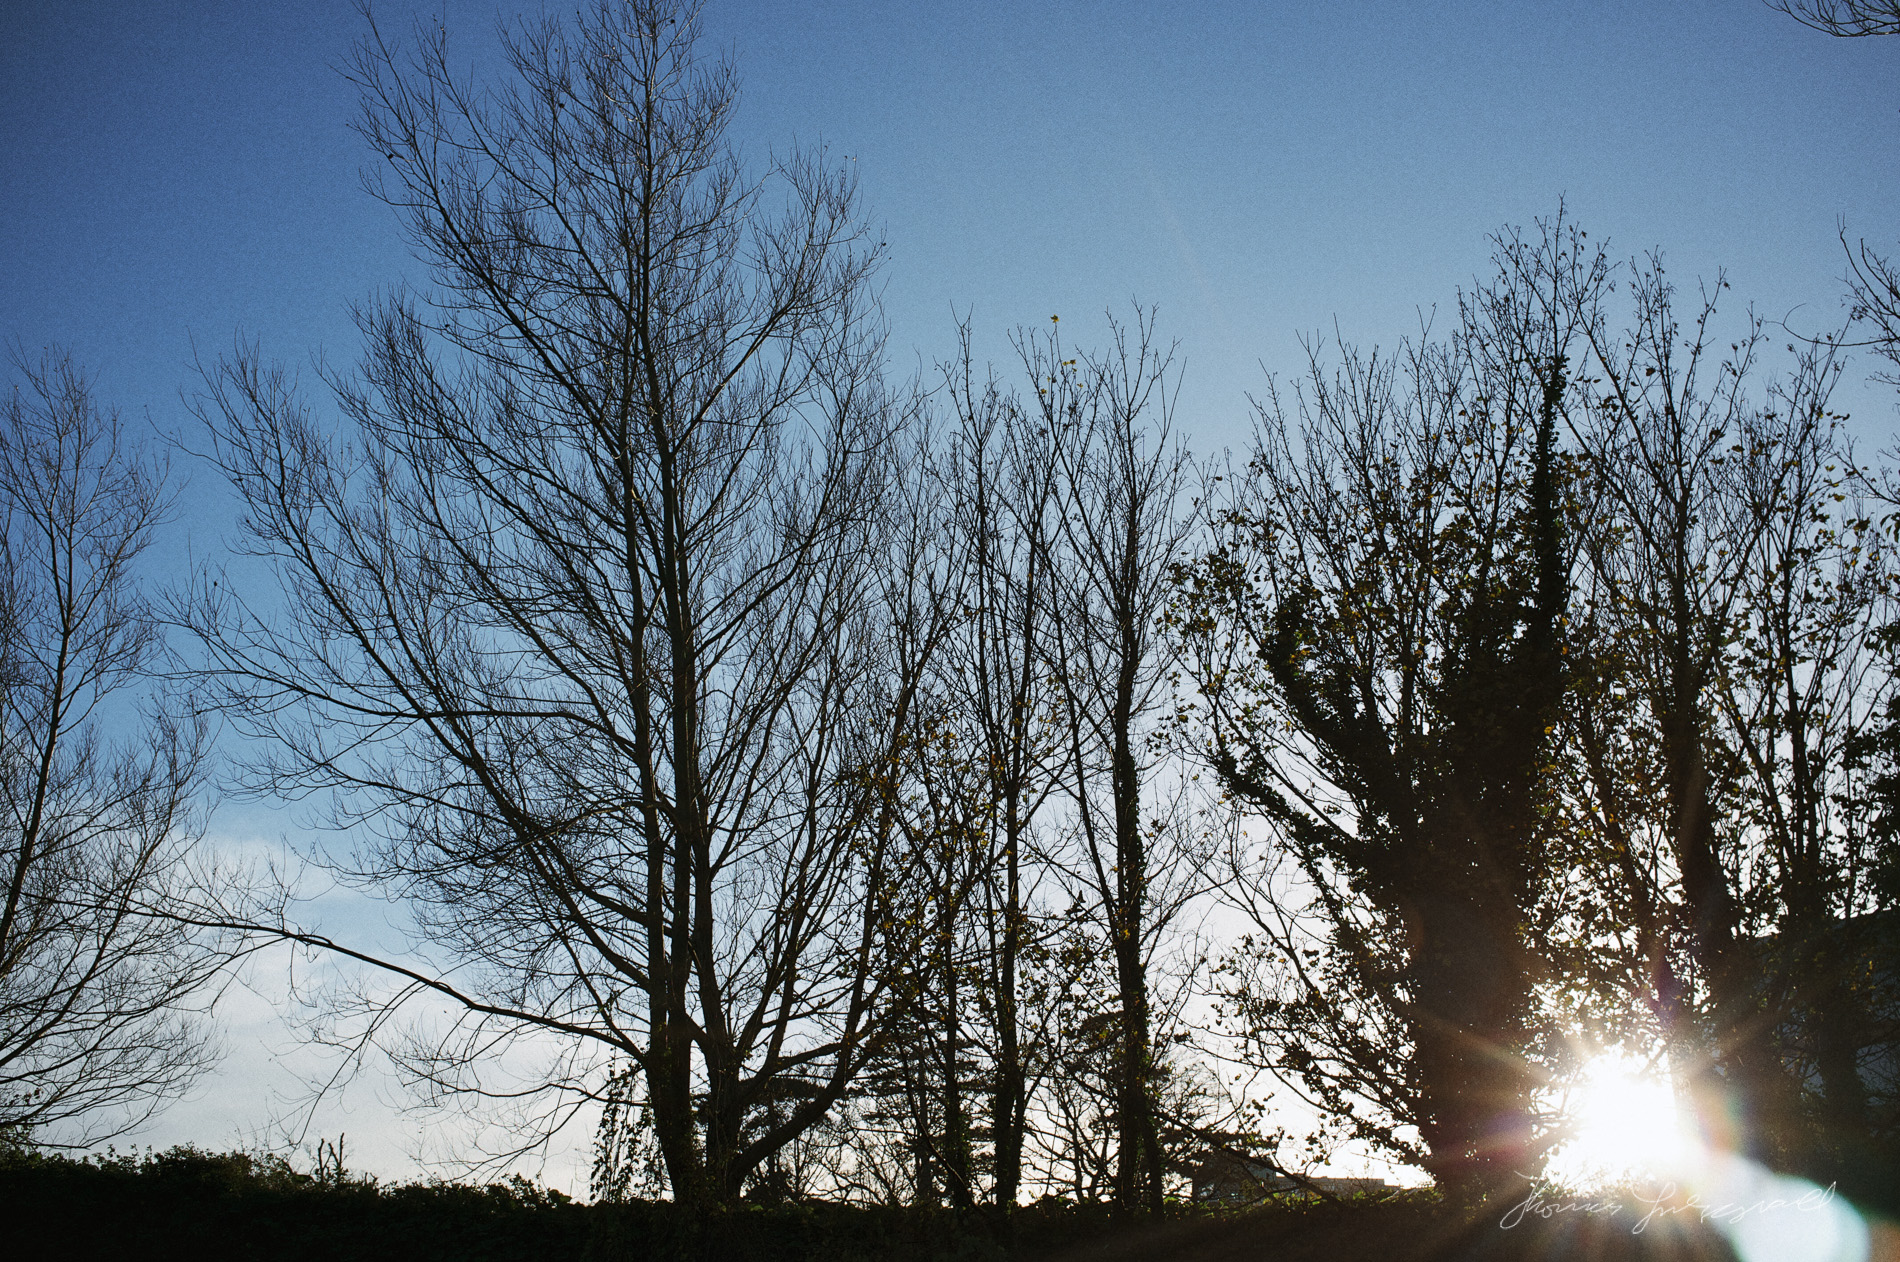 sun behind bare winter trees